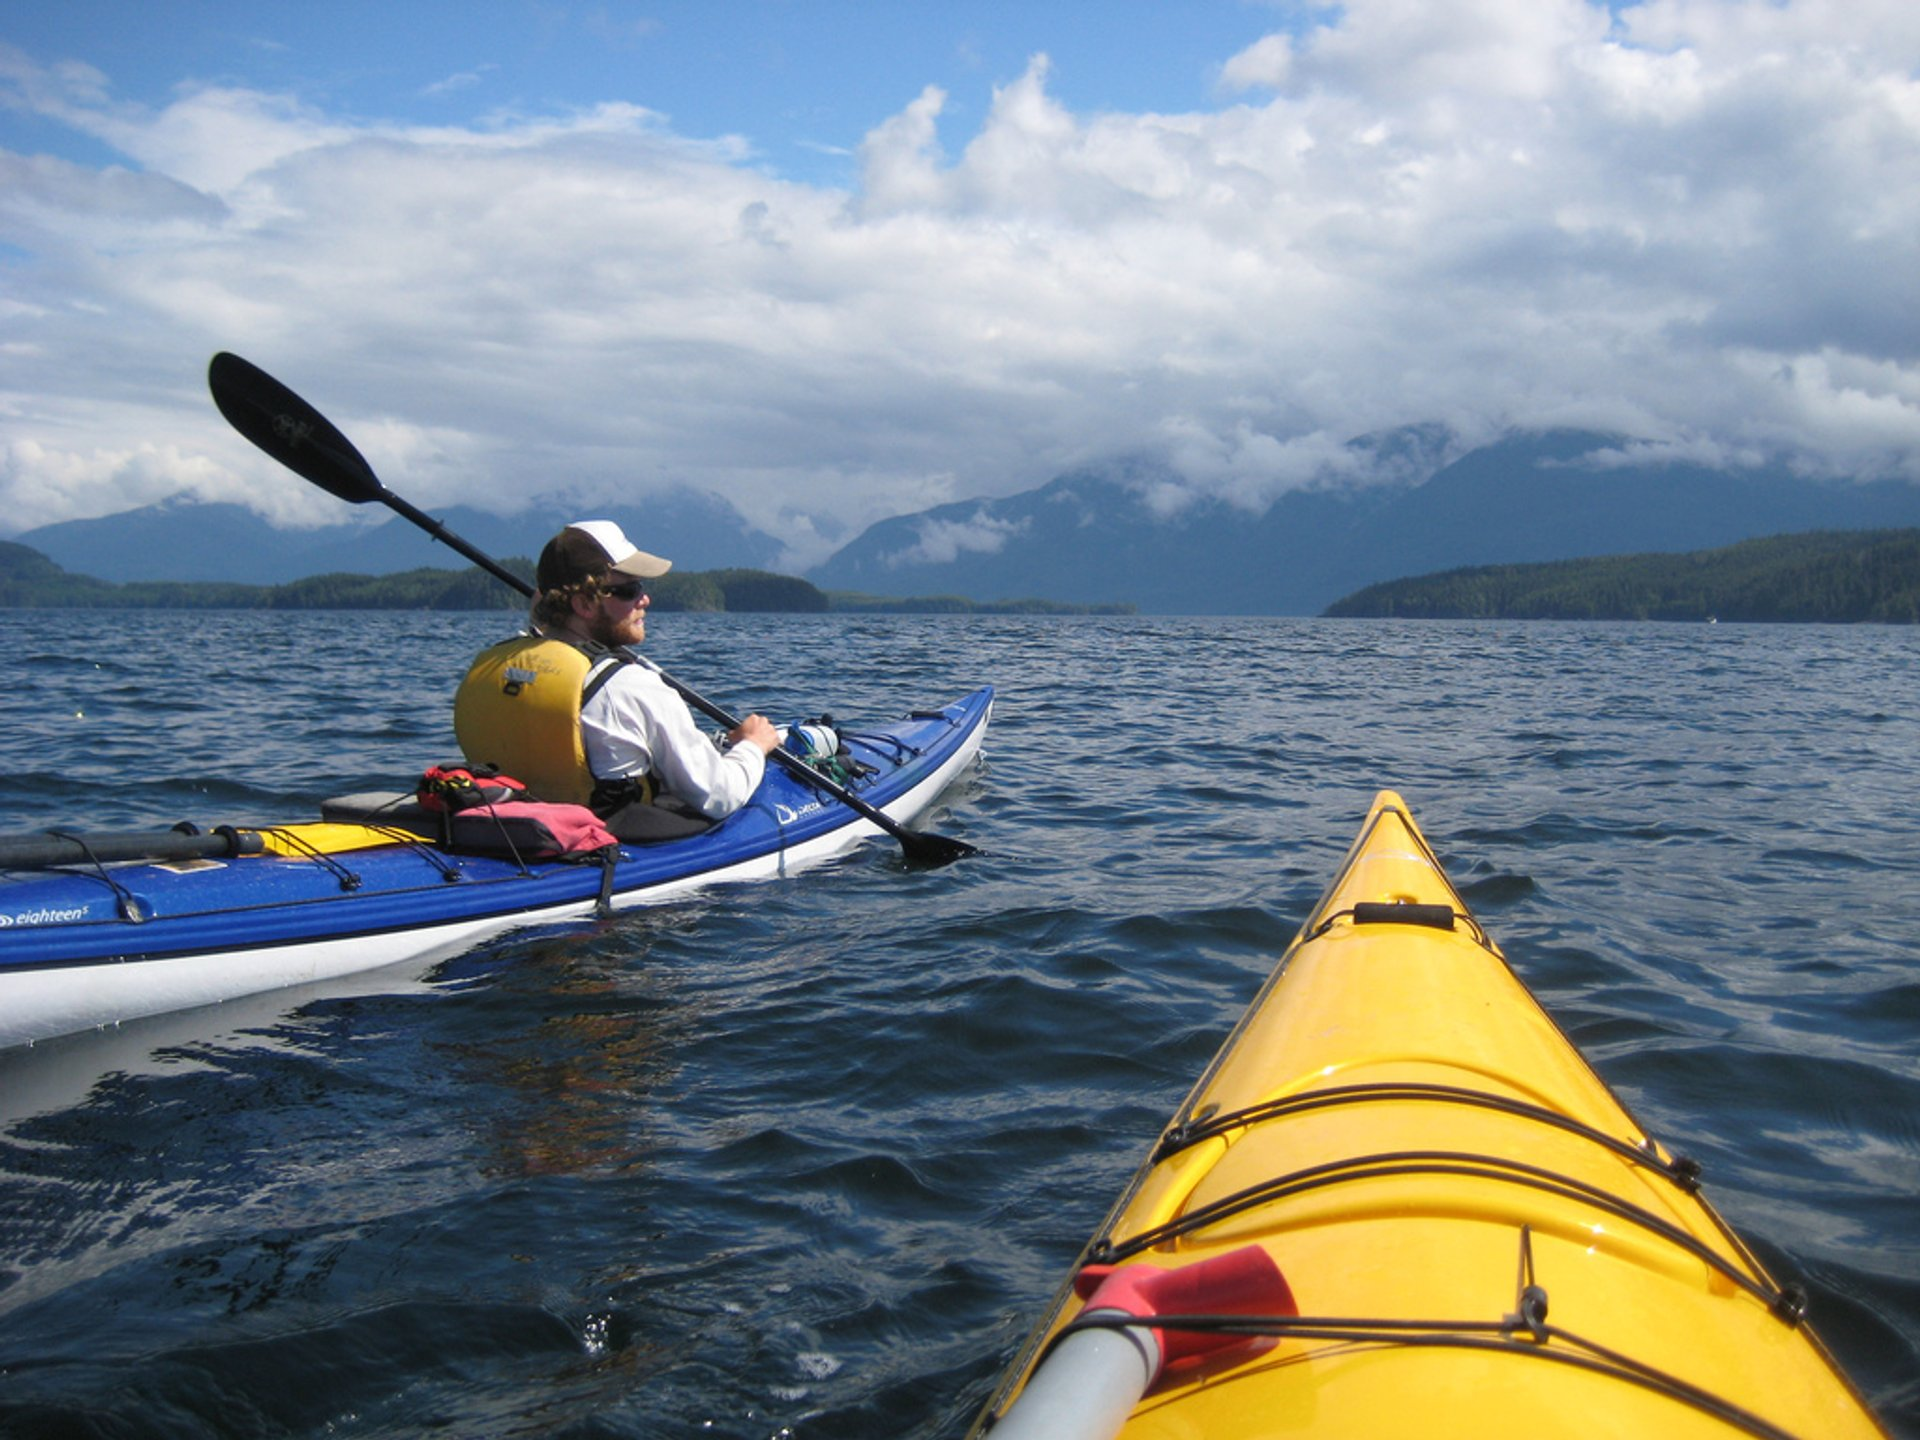 Kayaking in Vancouver 2020 - Best Time